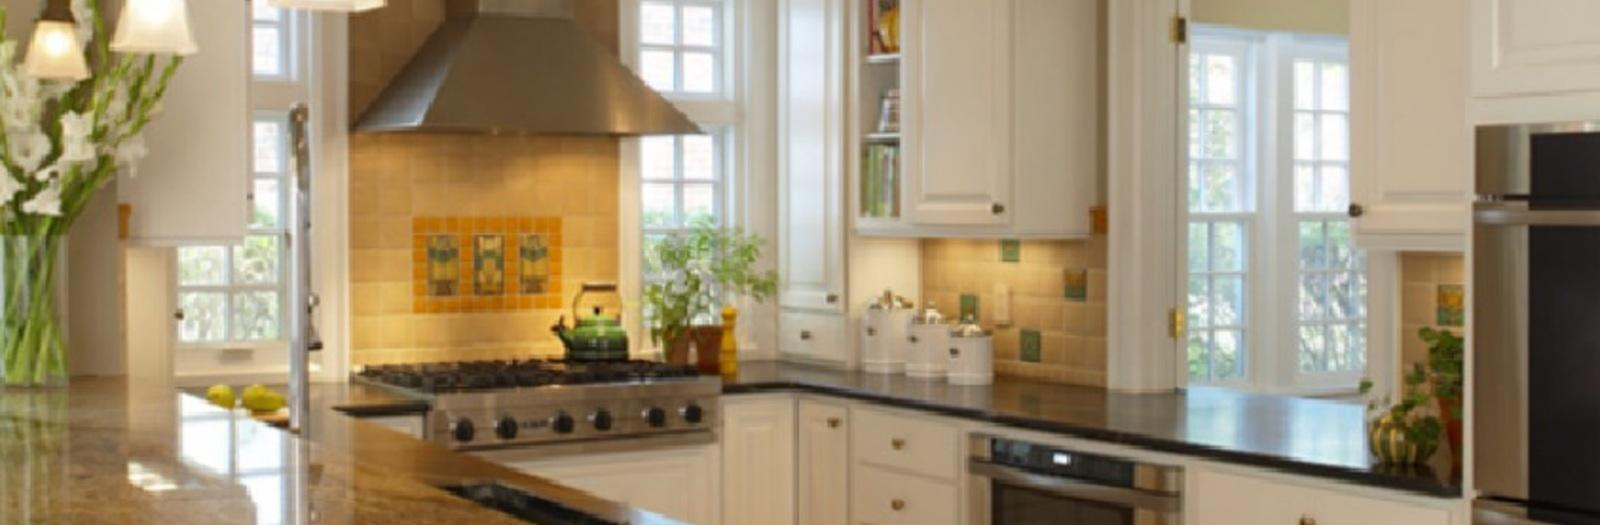 Transitional Kitchen with white raised panel cabinetry